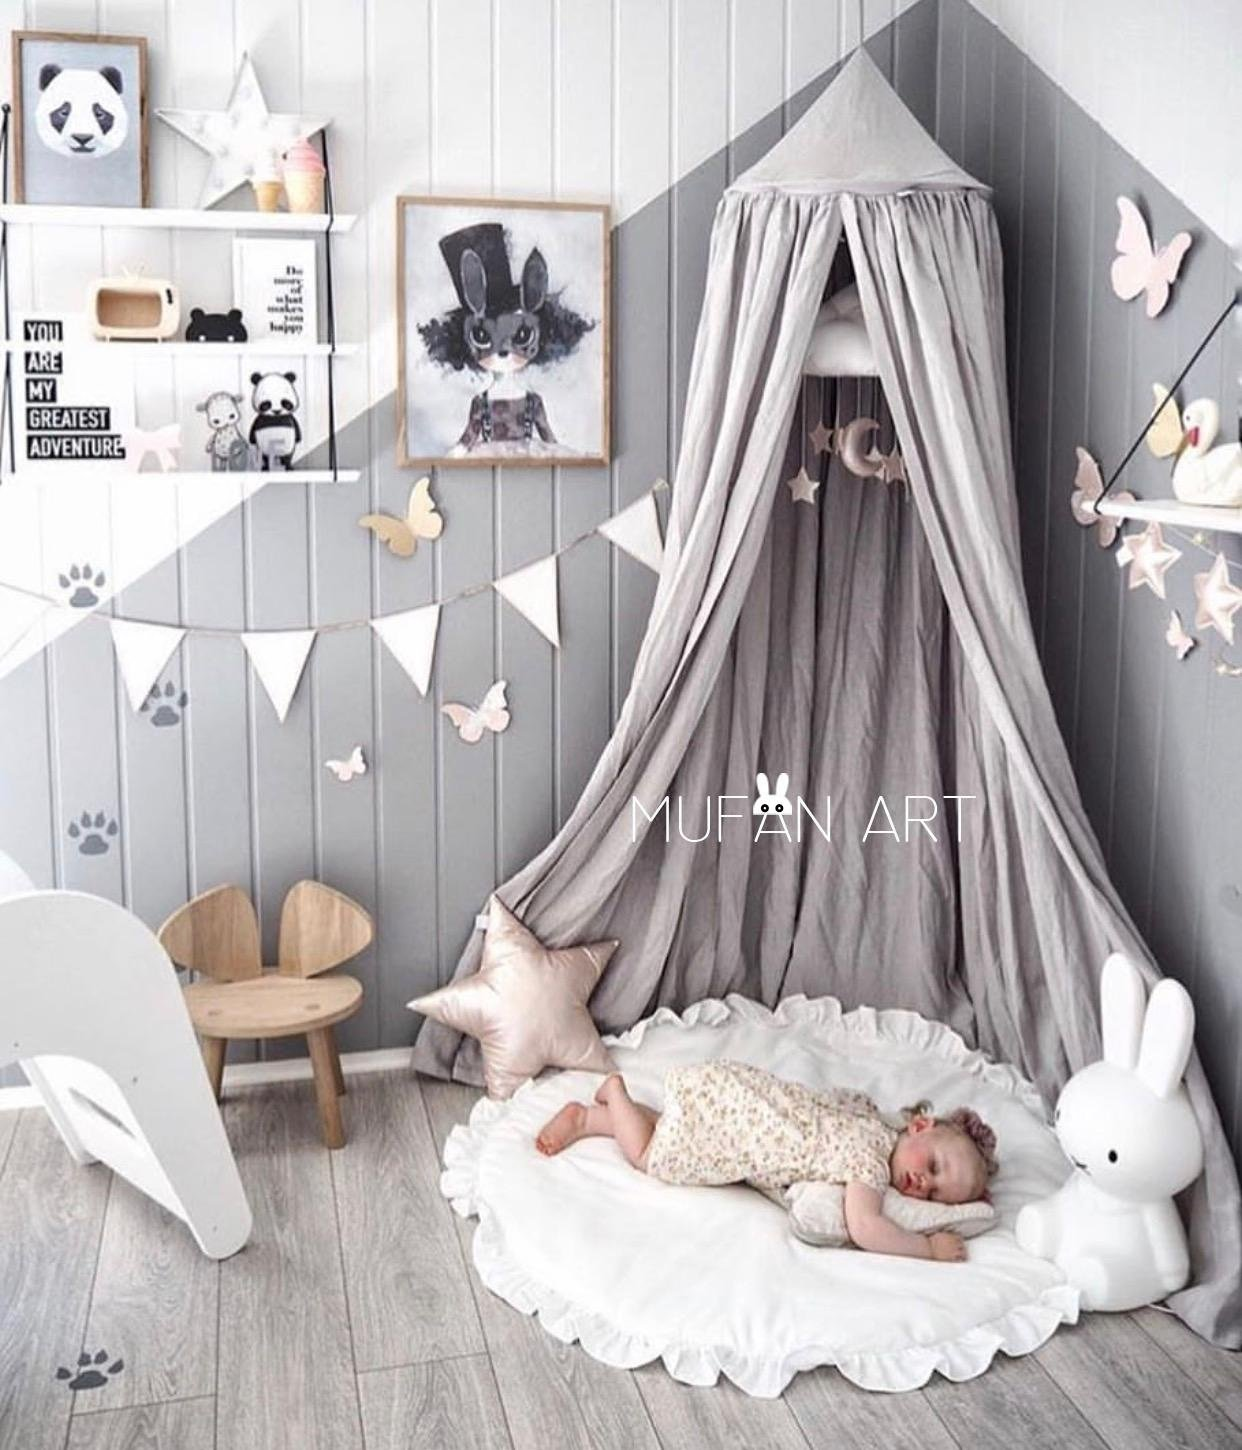 Princess Bed Canopy Mosquito Net Block Out Light Dome for Girls Kids Baby Crib, Castle Play Tent Hanging Over Decoration Nook Reading Furniture, Cotton Canvas, Height-95 inch (Pink) (Prince Grey) LEDUNUS